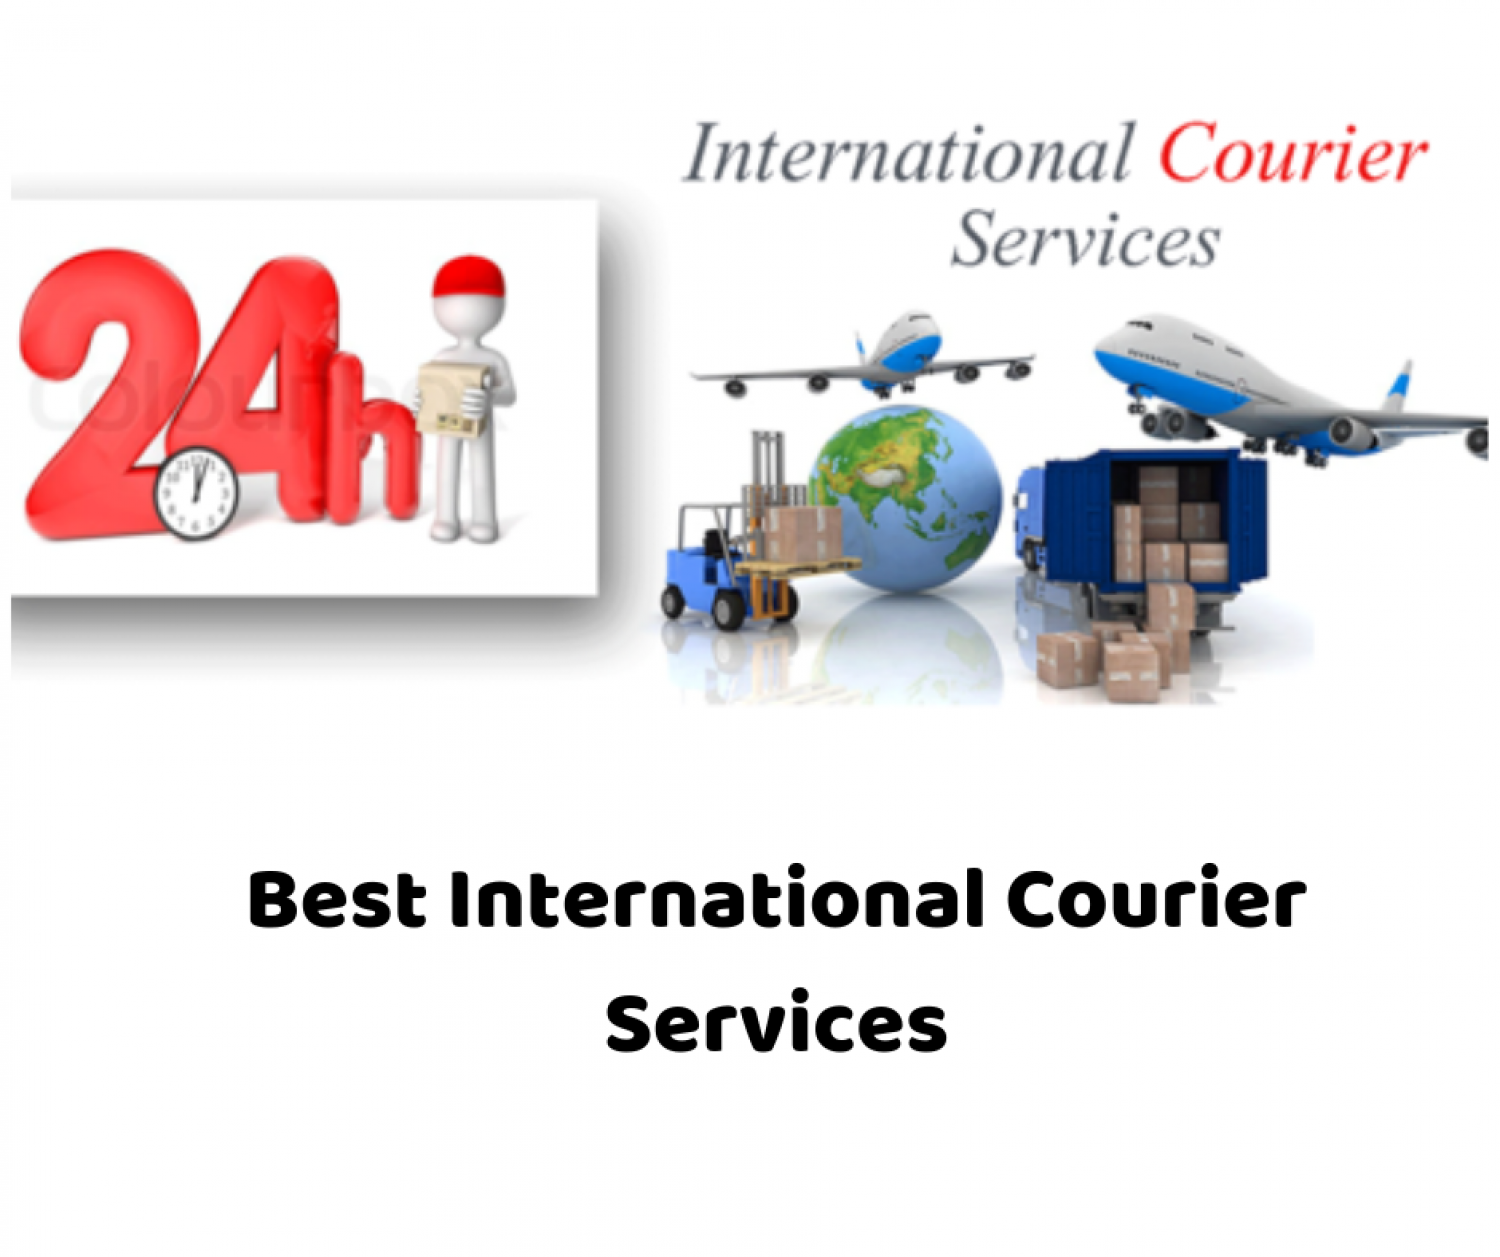 Best International Courier Services Worldwide Infographic